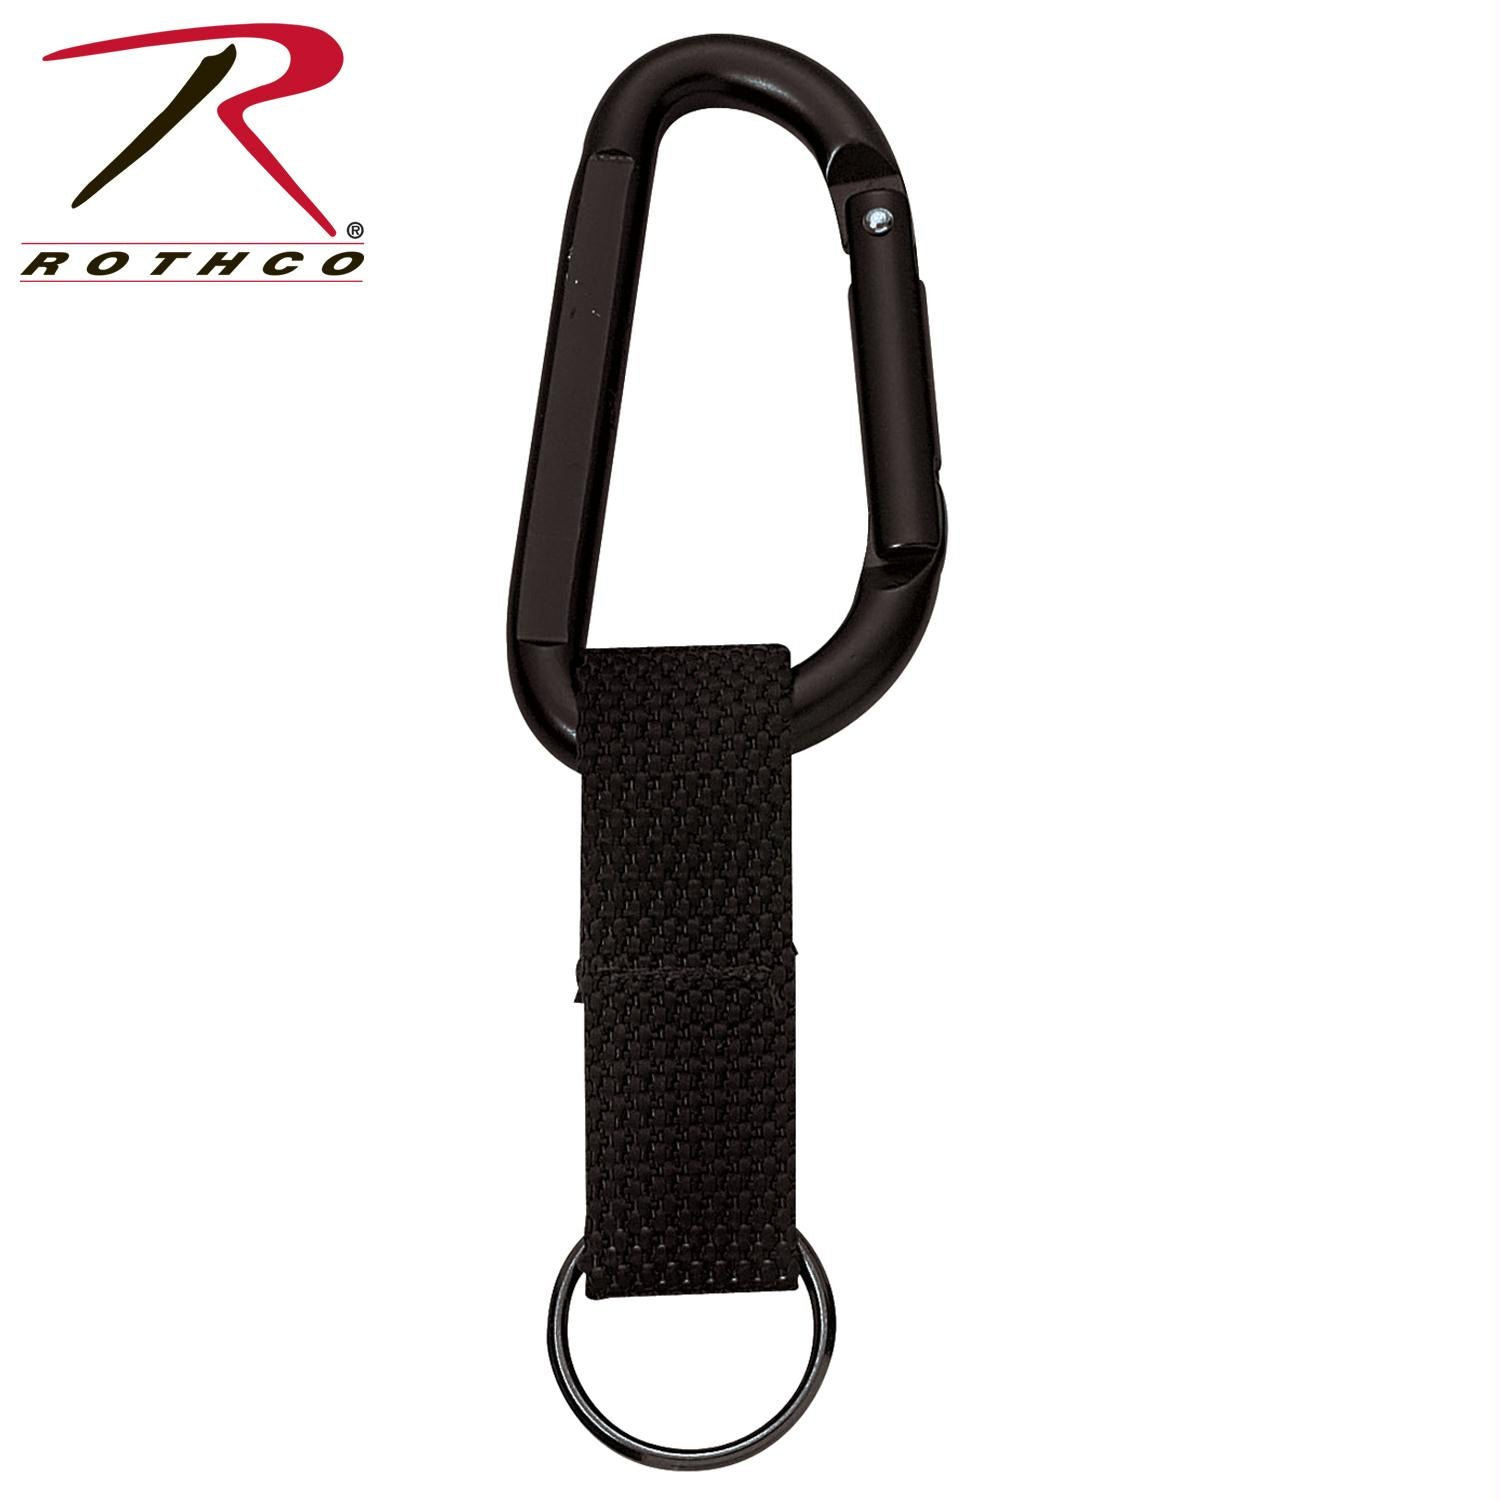 Rothco Jumbo 80MM Carabiner With Web Strap Key Ring - Black